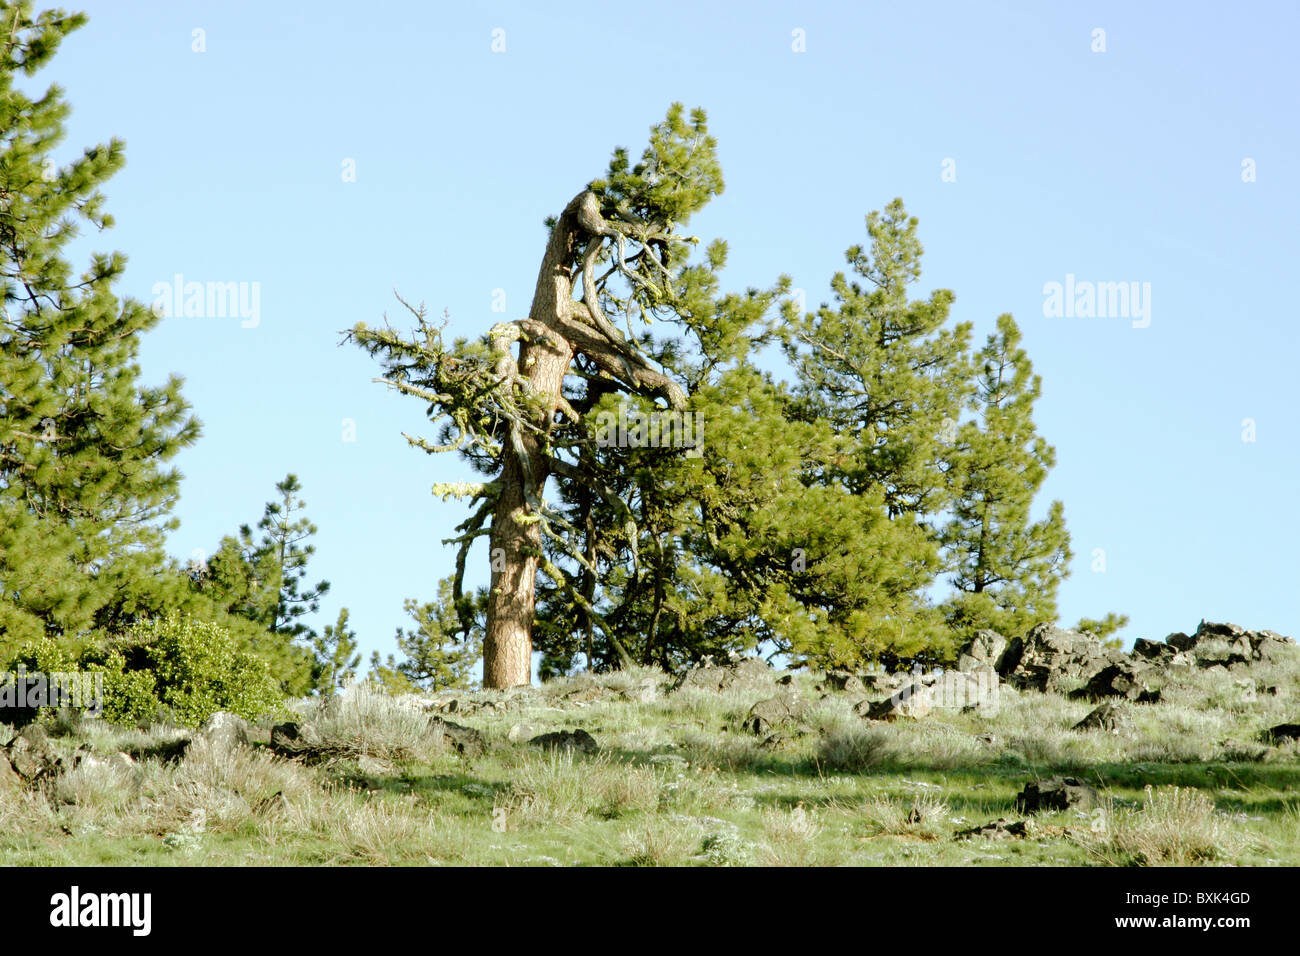 old pine tree deformed by snow and wind on top of a ridge - Stock Image